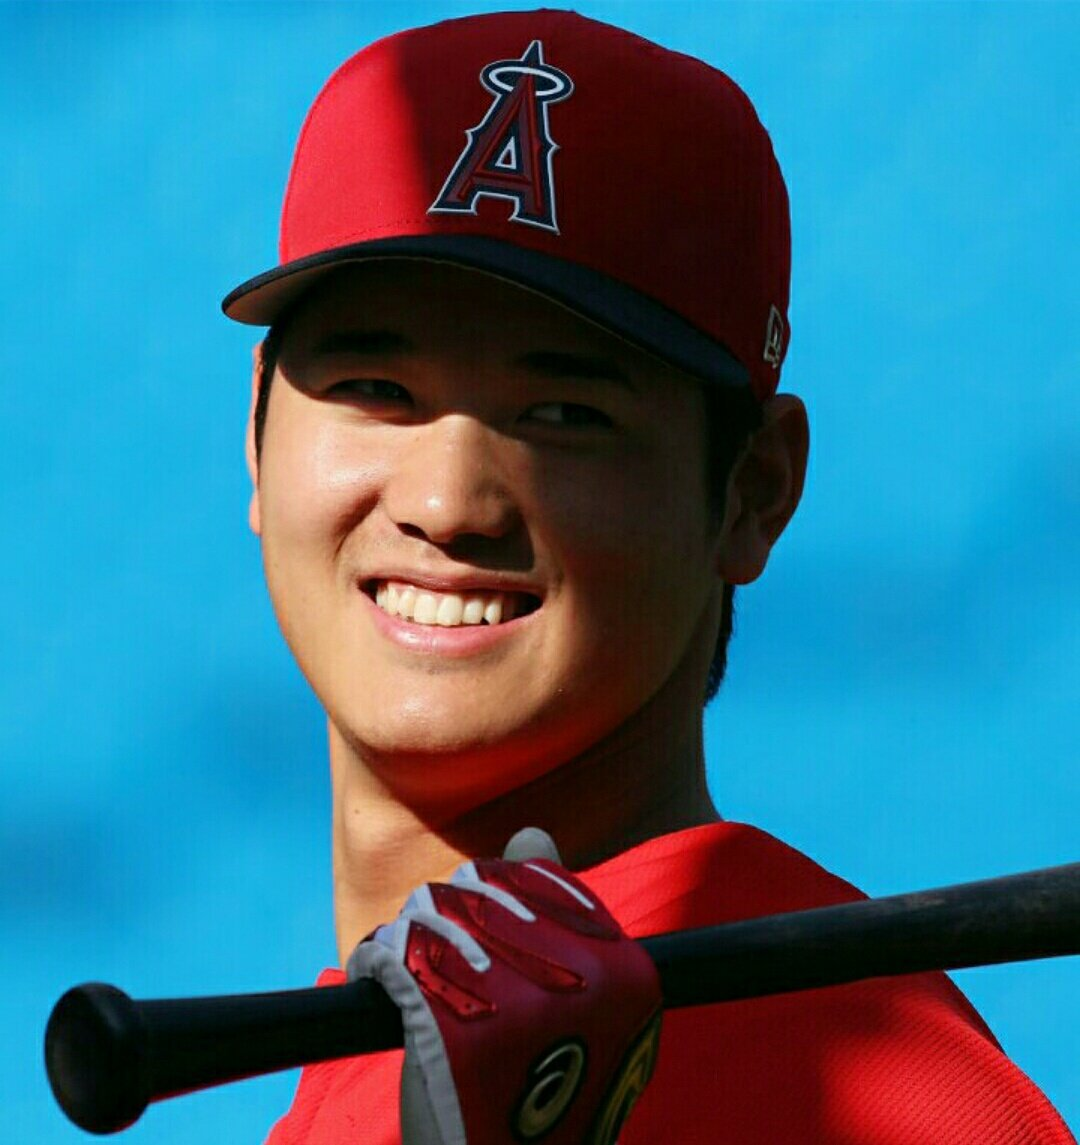 Shohei going to Toronto to steal hearts, a base and a... pen   © Gettyimages #大谷翔平 #ShoheiOhtani<br>http://pic.twitter.com/c7J9vcU8zK